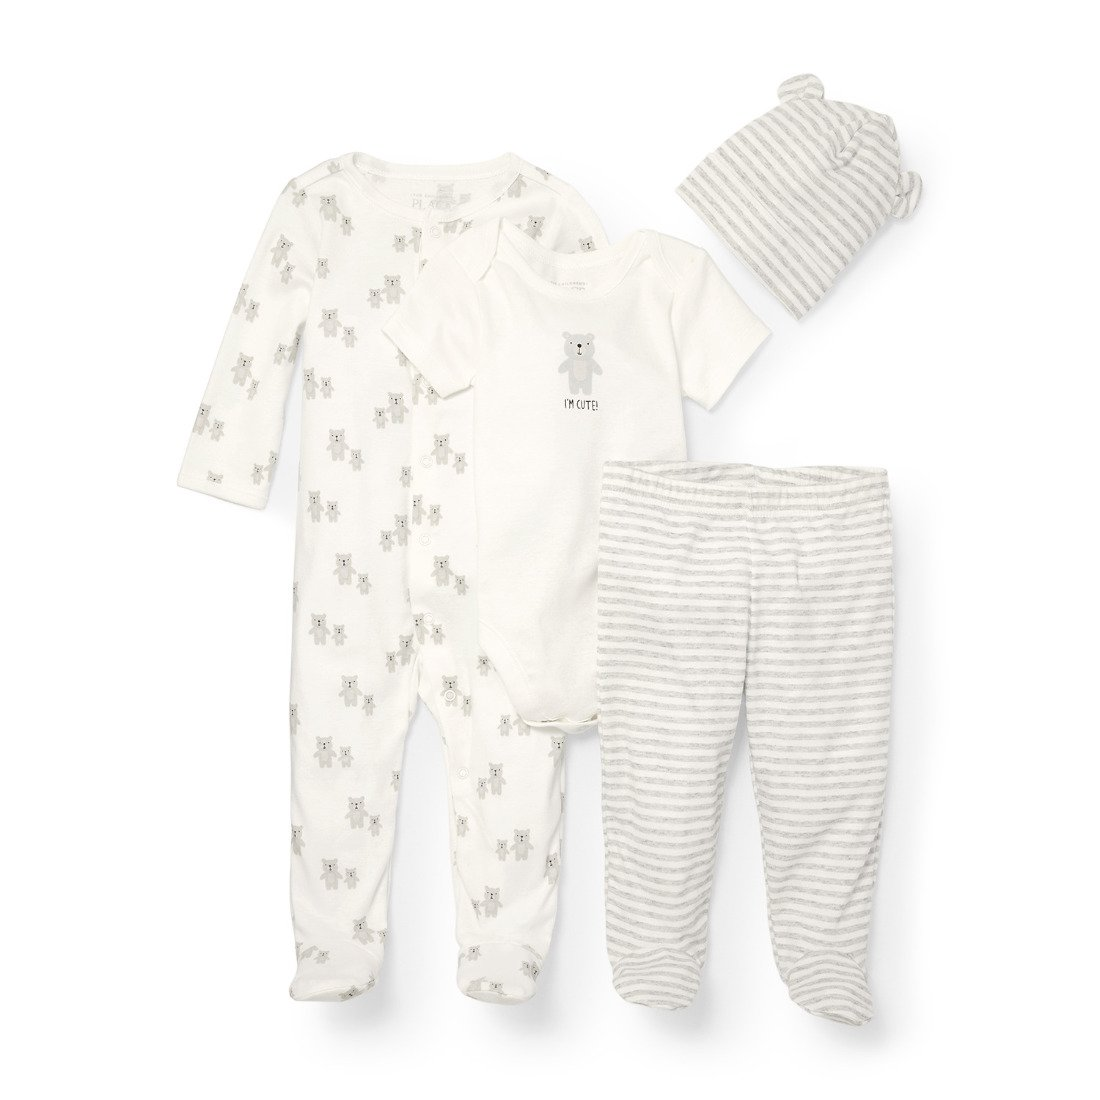 The Children's Place Unisex Baby Layette Gift Set 2077961